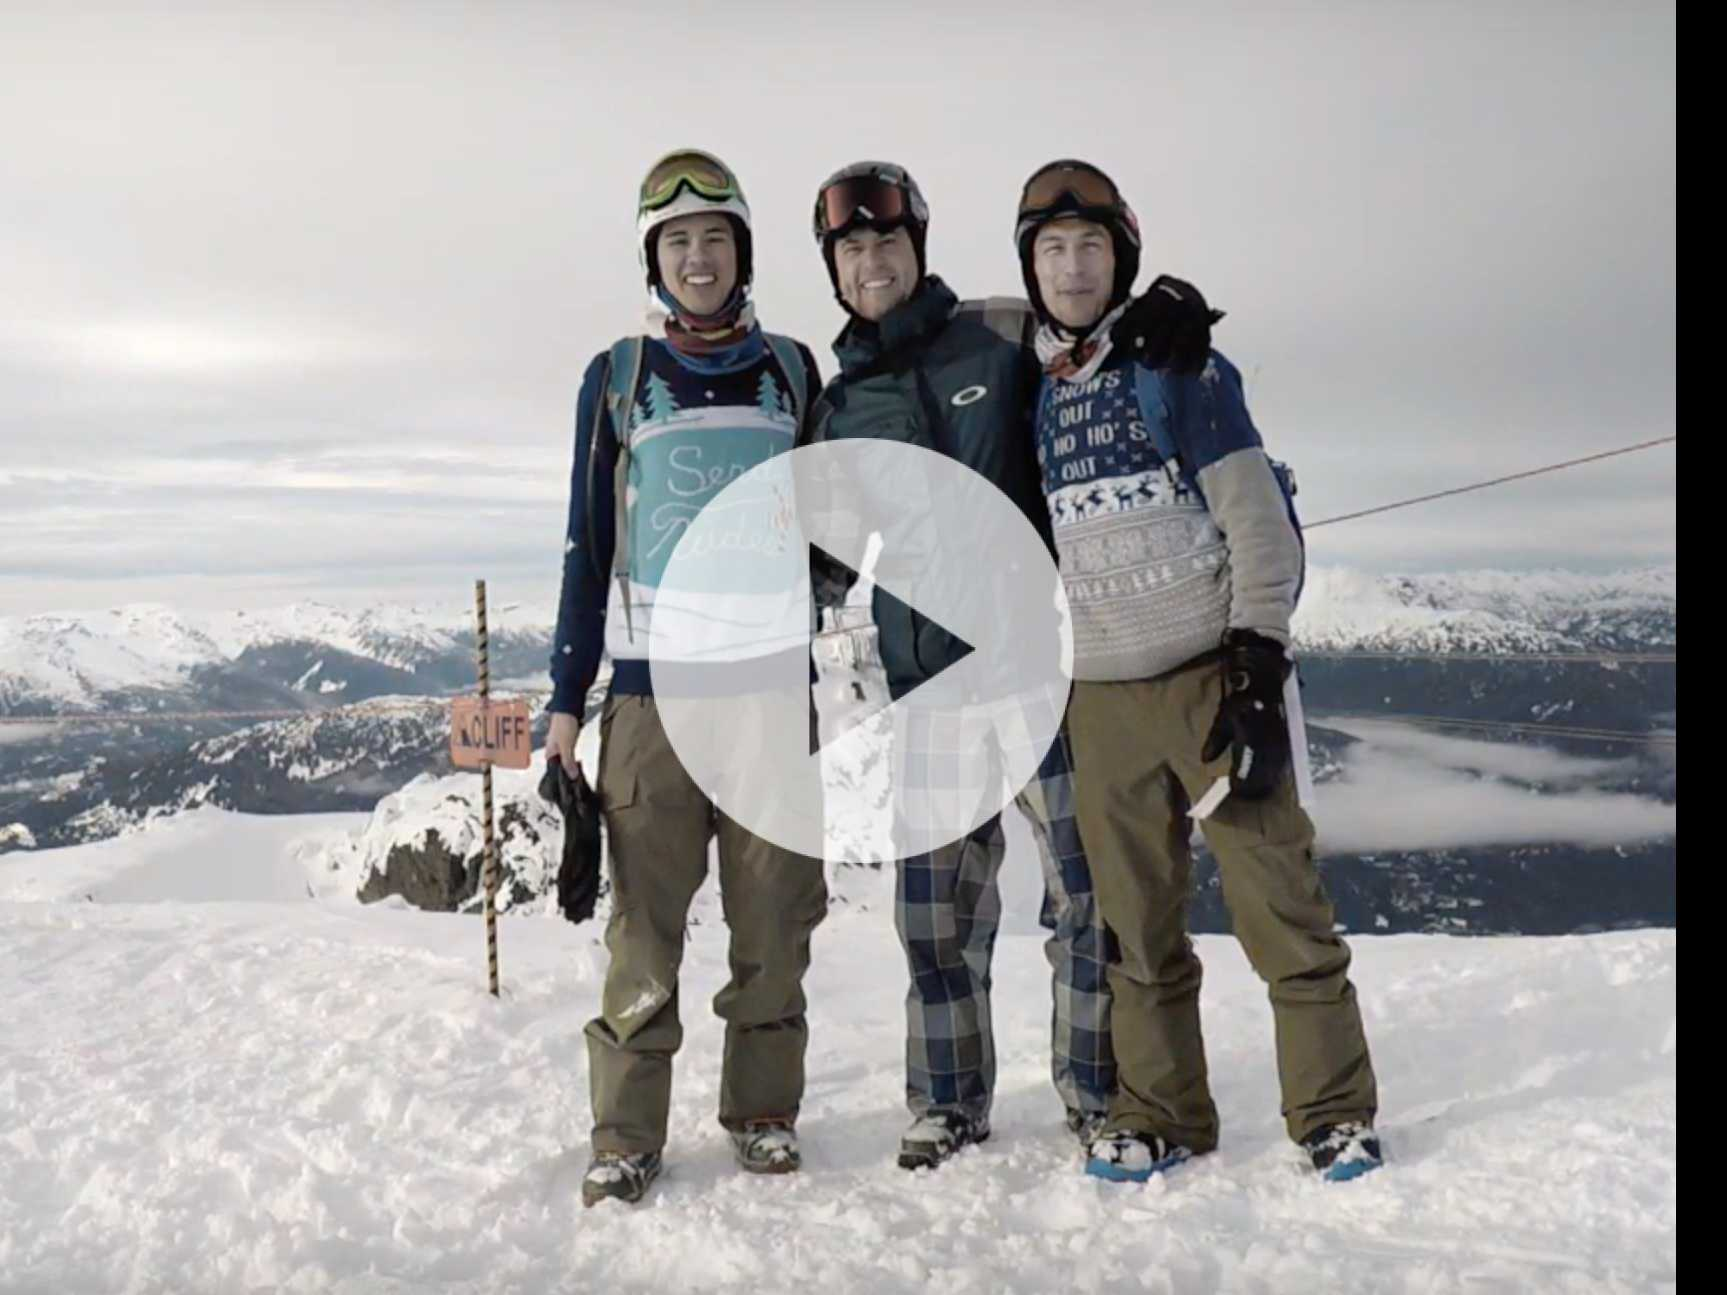 Watch: Whistler Pride and Ski Festival